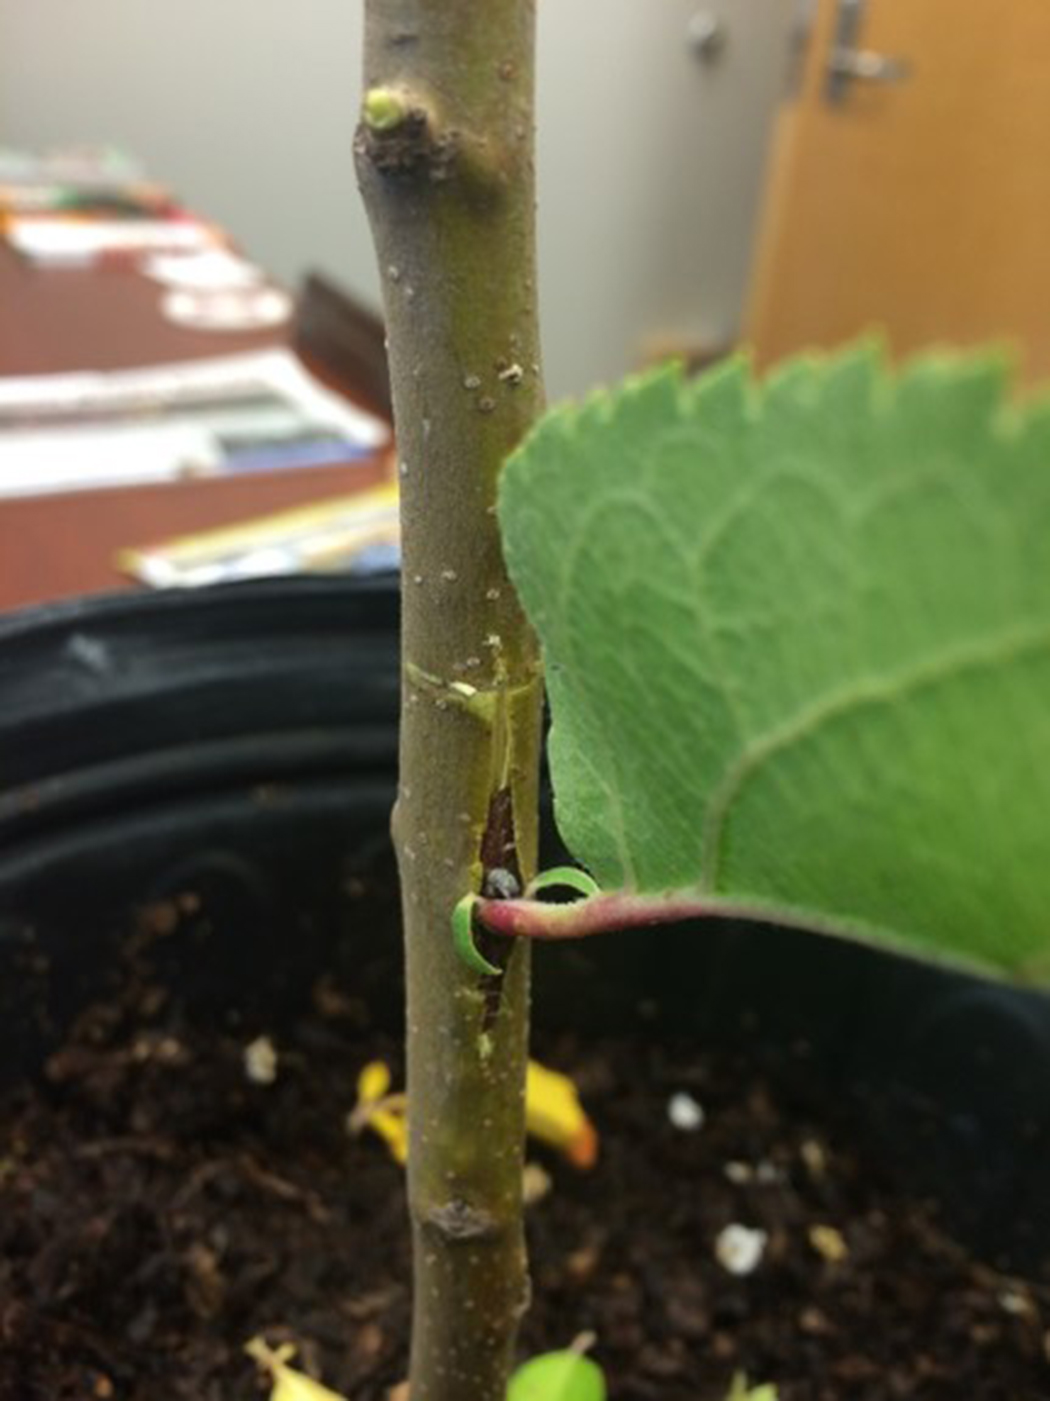 The potted plant's trunk with a stem inserted into the T cut. The new stem has a leaf.